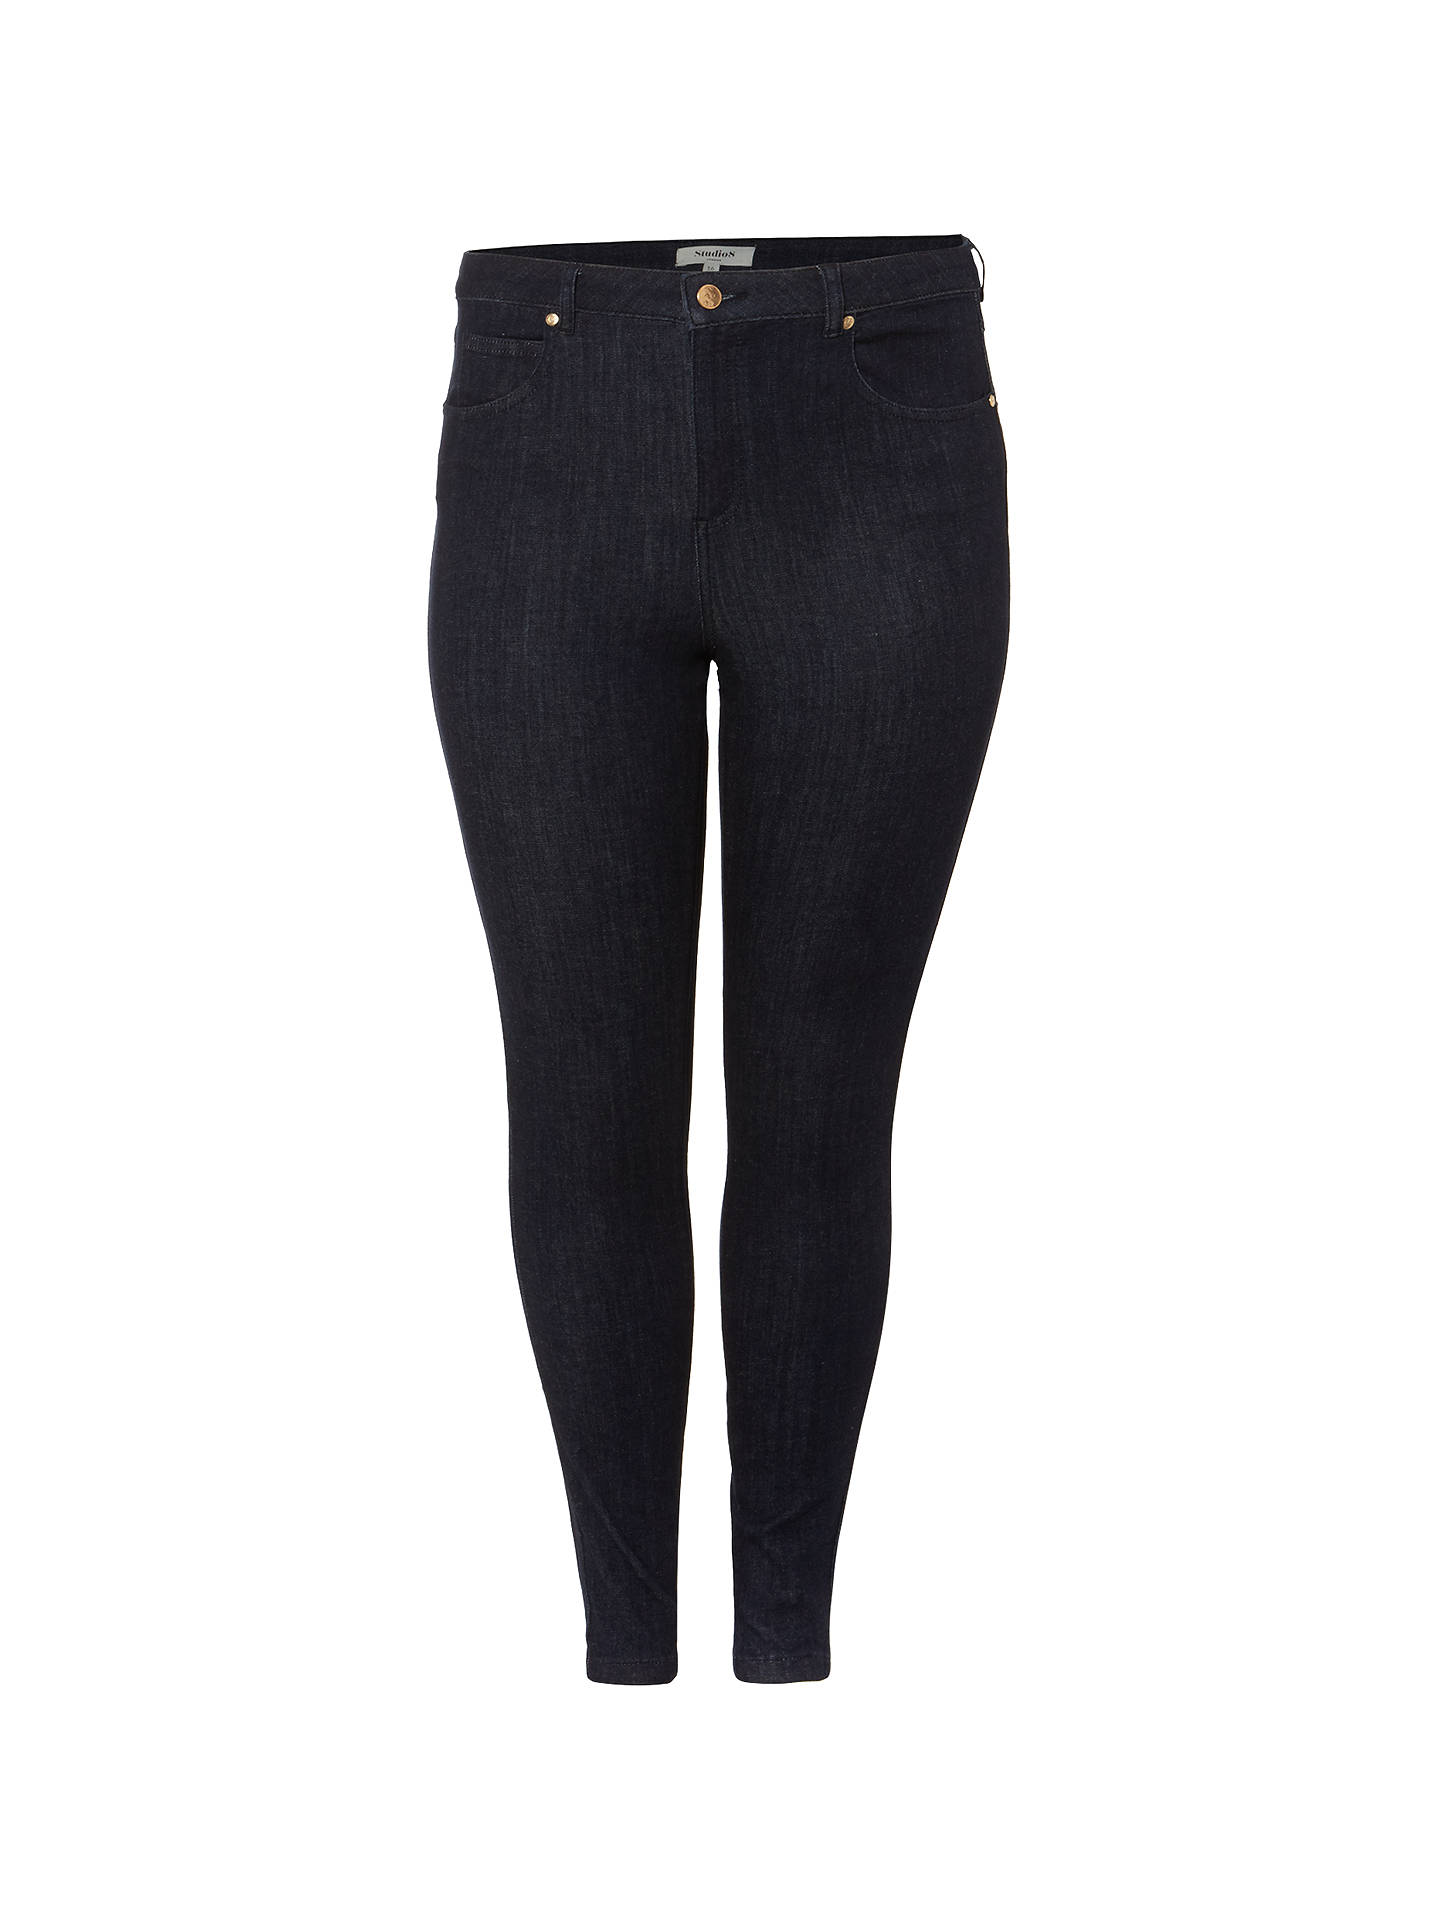 BuyStudio 8 Molly Jeans, Indigo, 12 Online at johnlewis.com